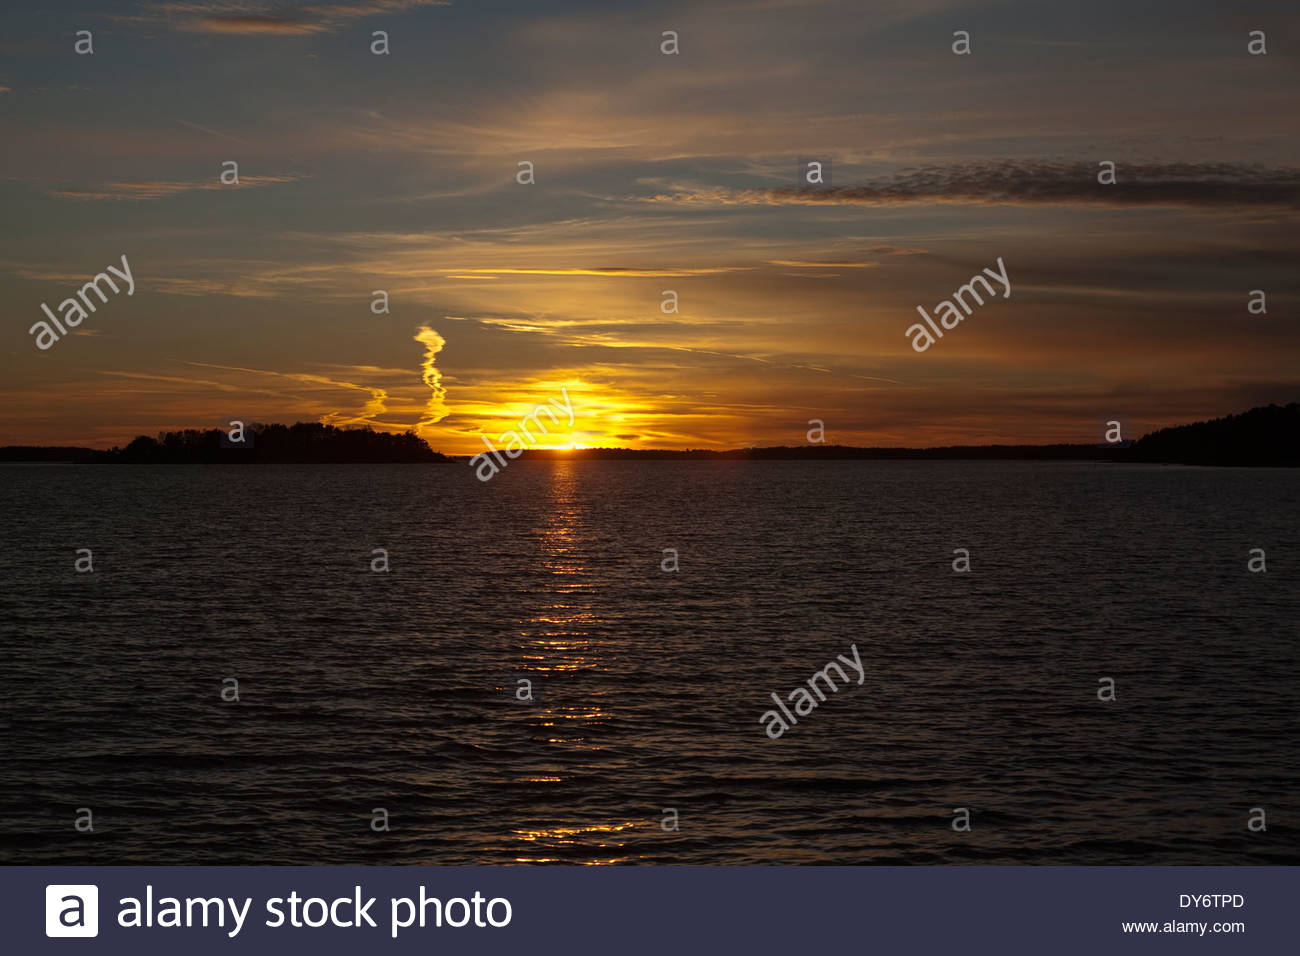 Evening afterglow - Stock Image